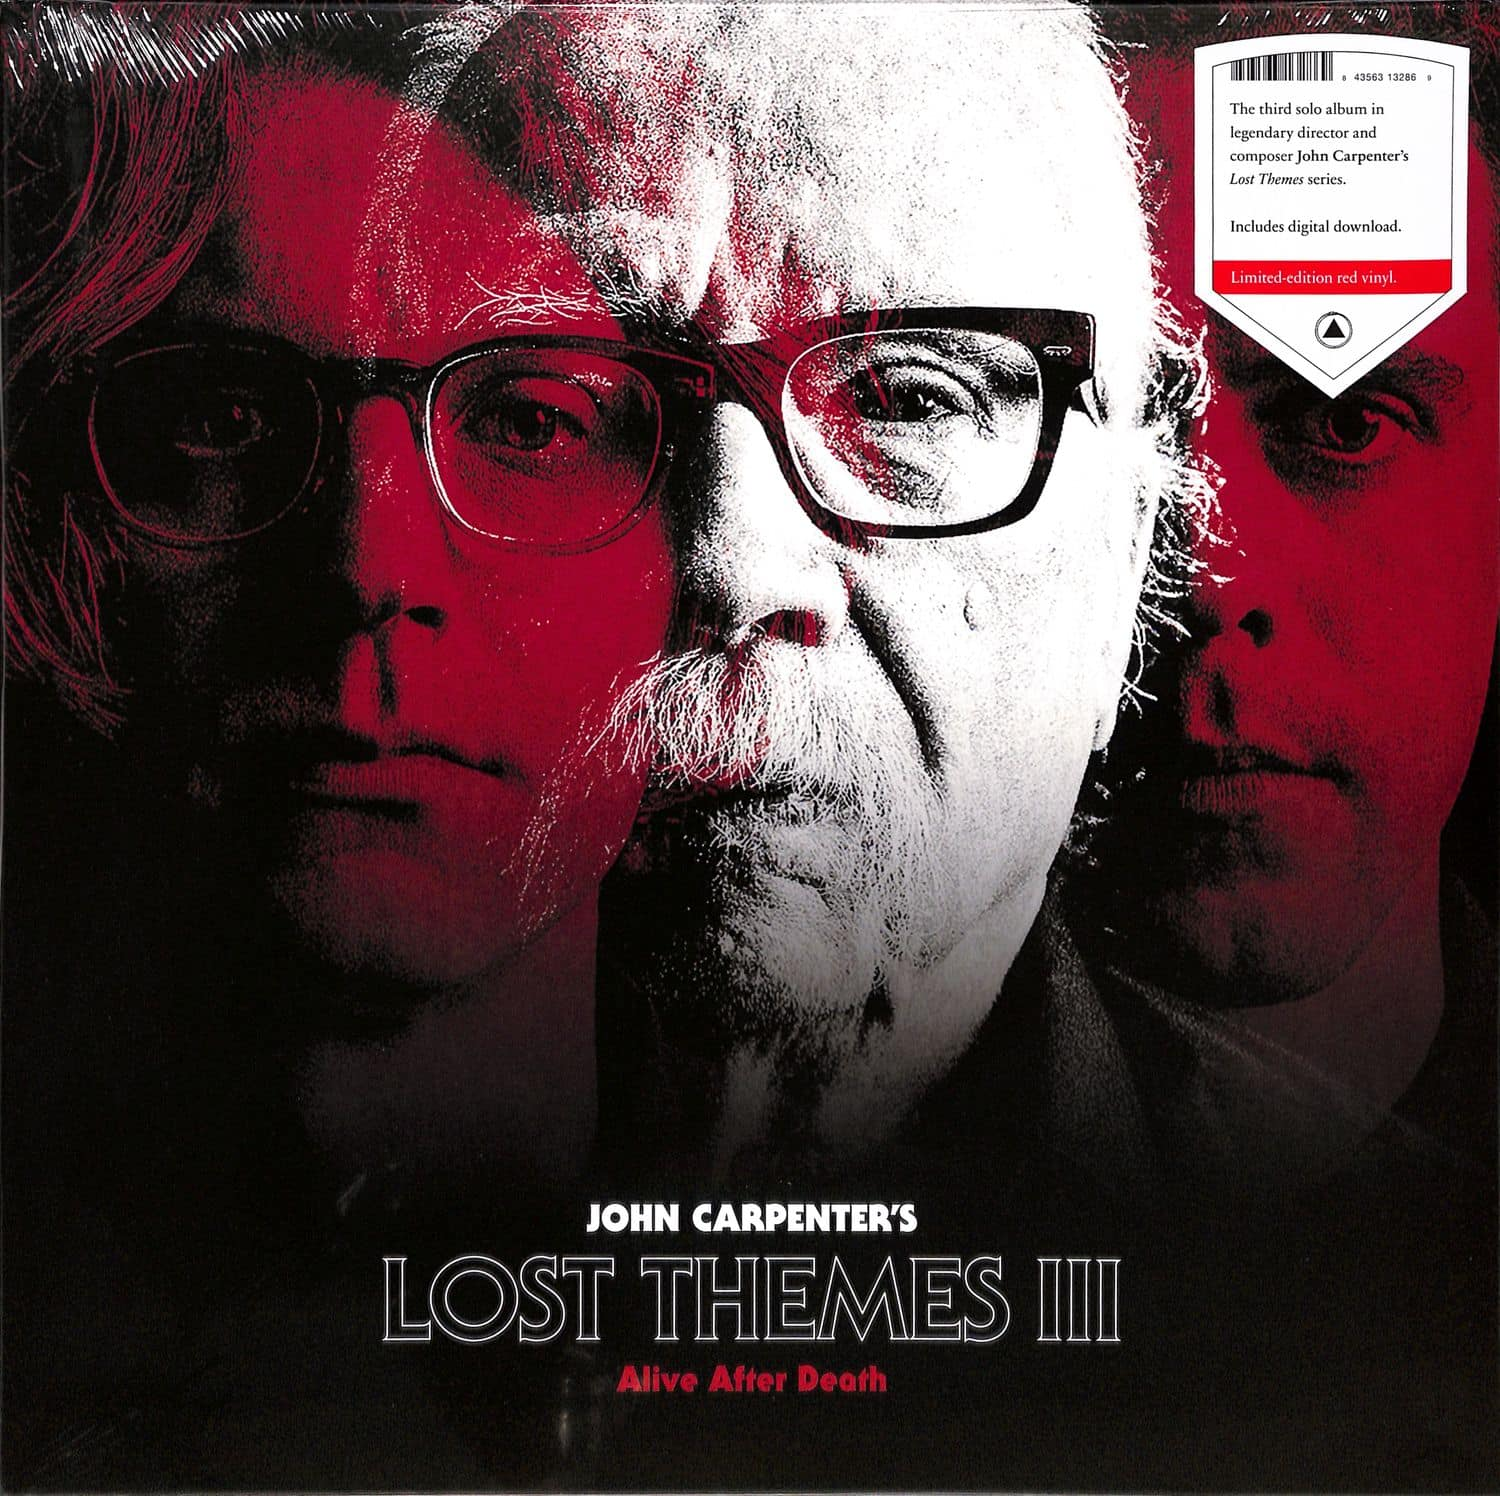 John Carpenter - LOST THEMES III - ALIVE AFTER DEATH